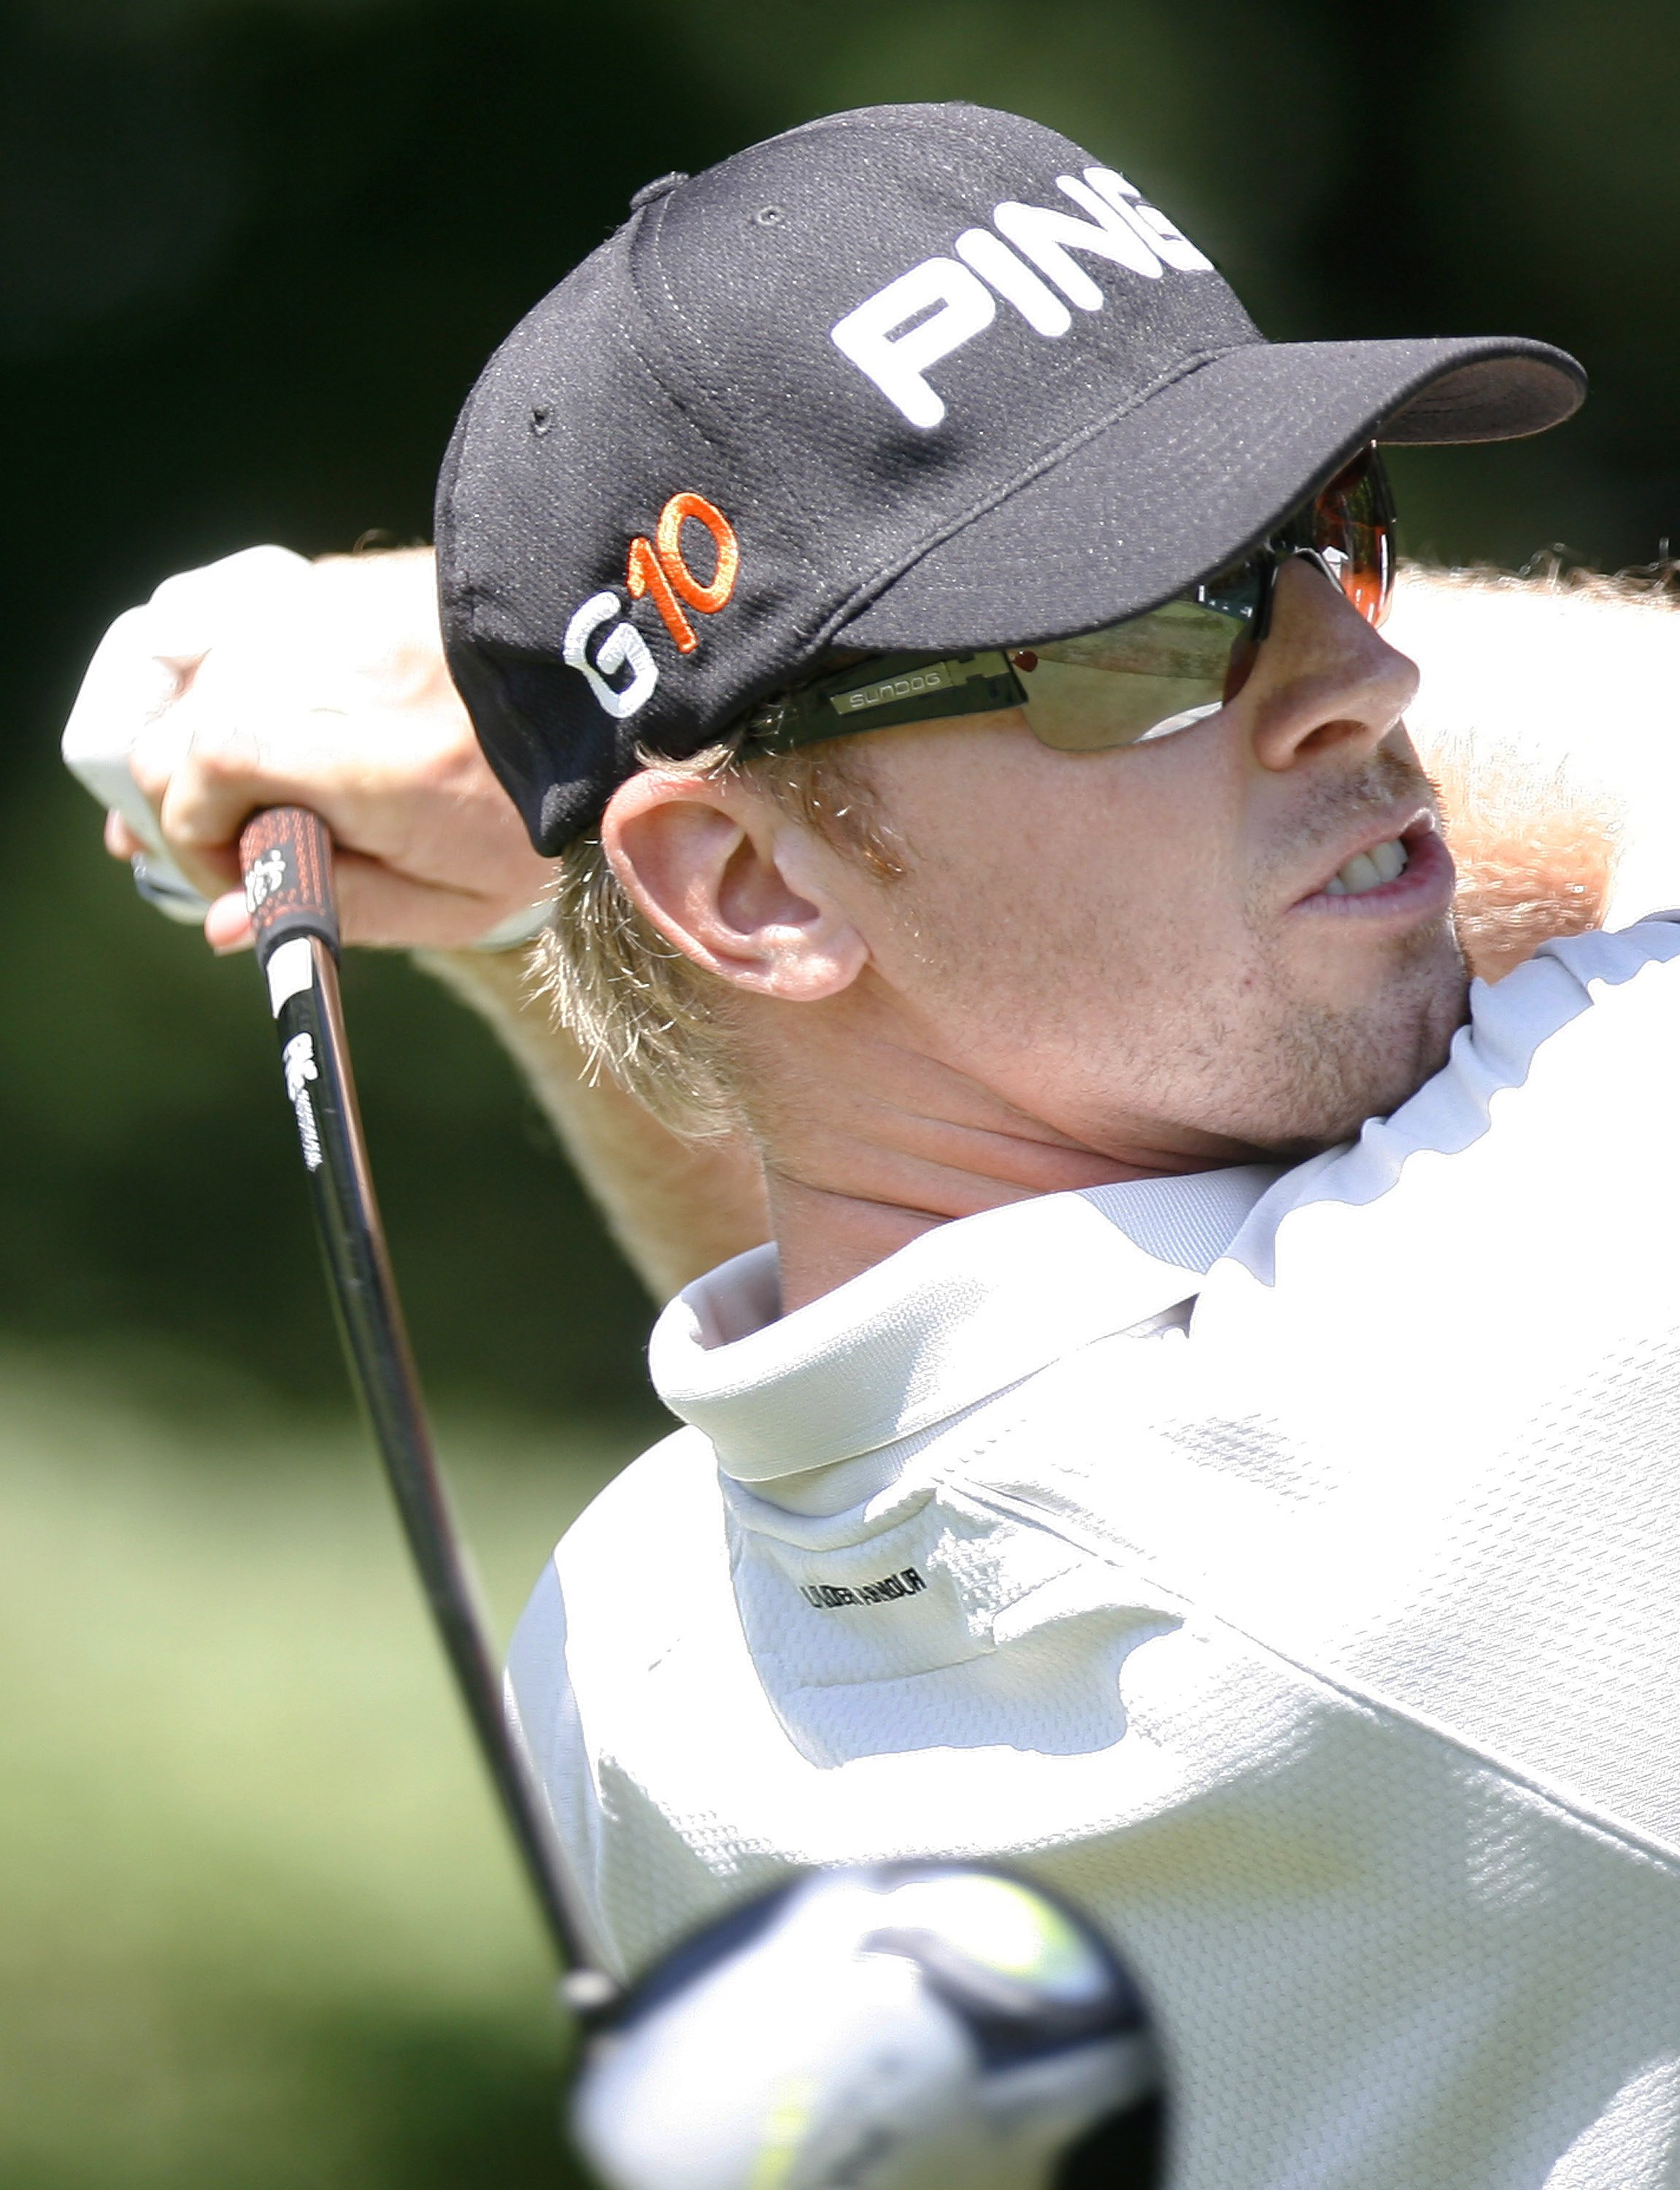 Golfer Hunter Mahan of the U.S. tees off on the 17th hole at the Ridgewood Country Club during the first round of the PGA Tour Barclays tournament in ...